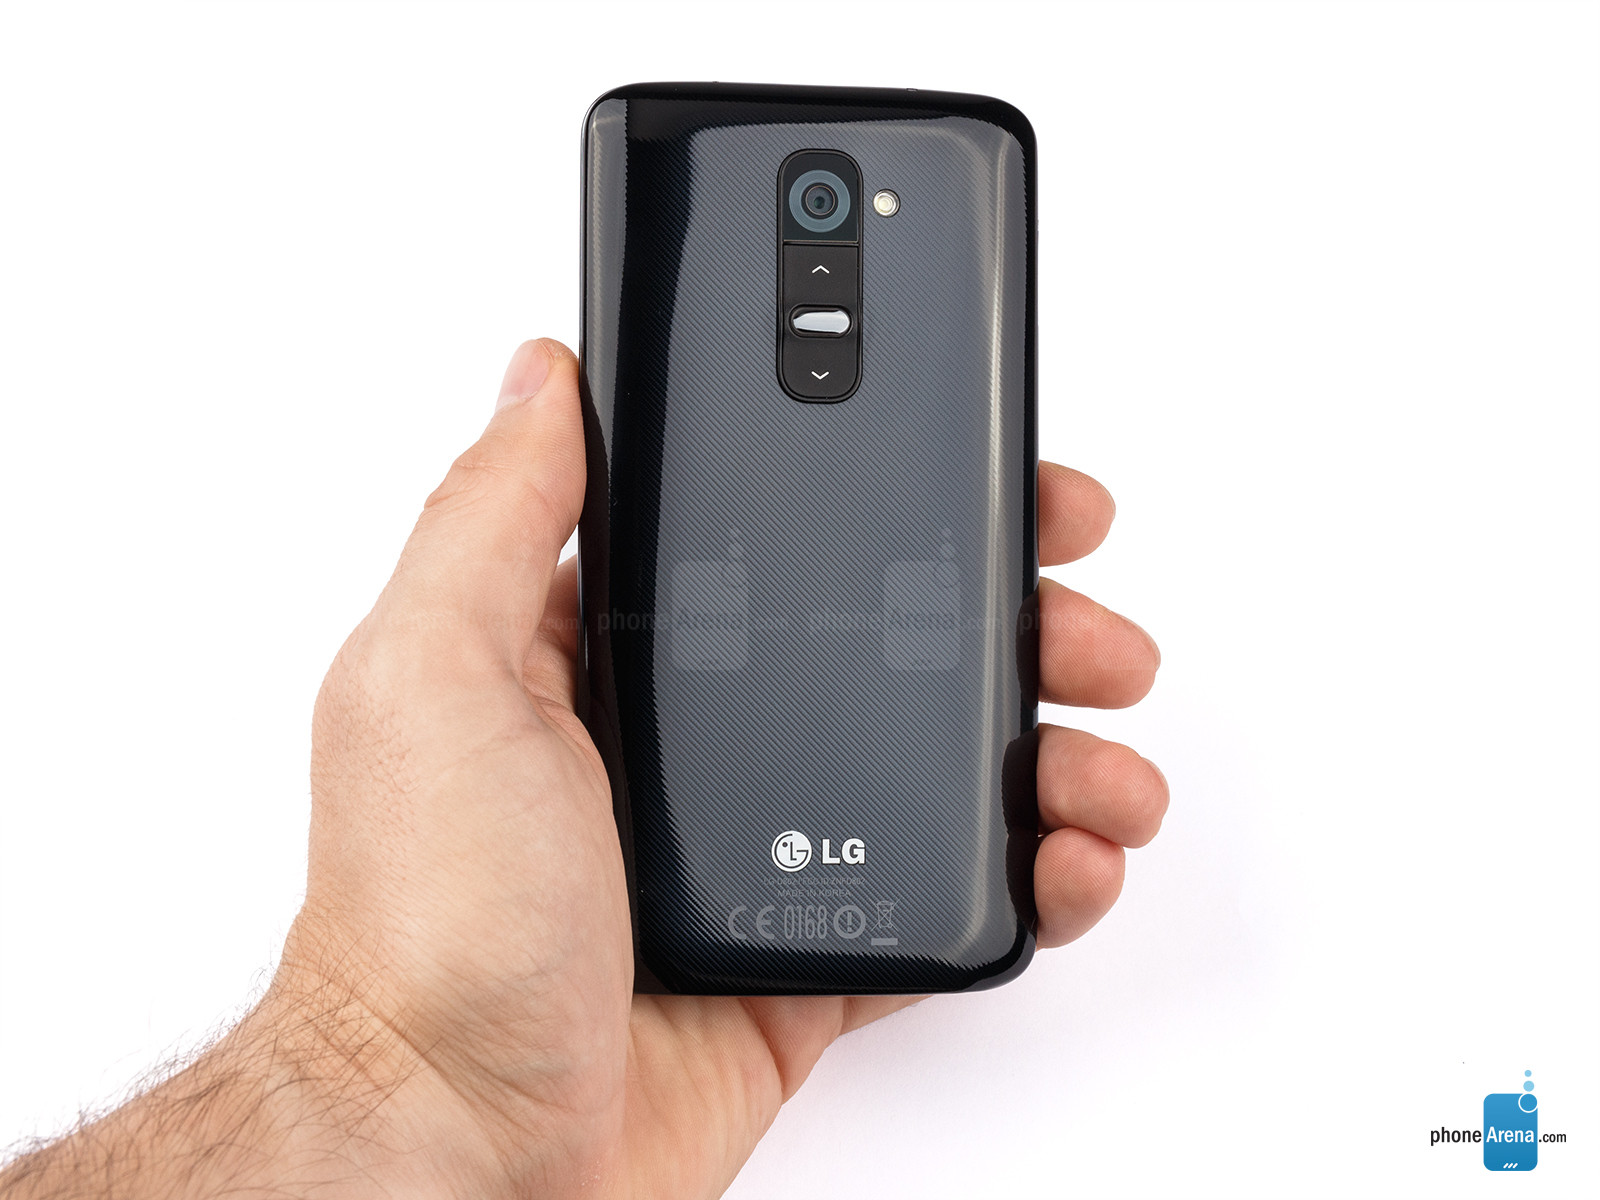 LG-2-images